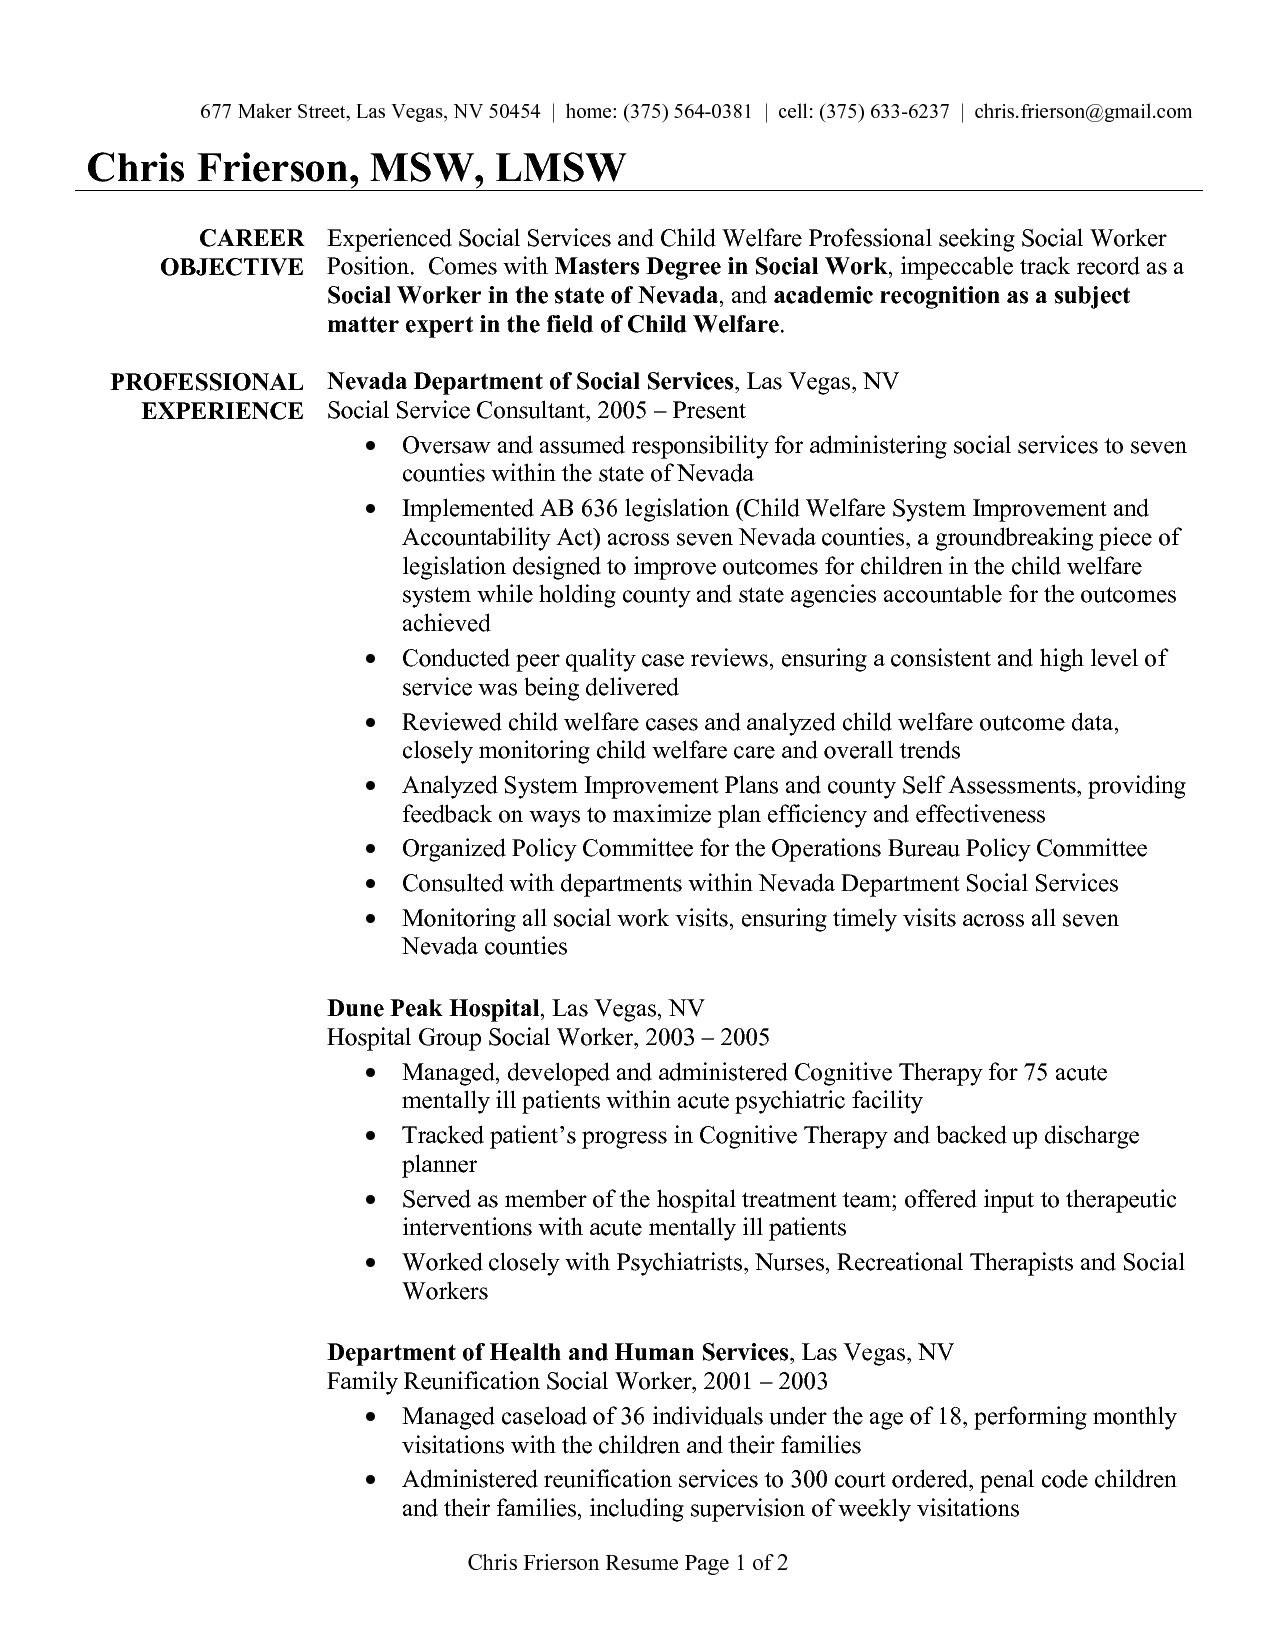 Sample Resume Templates Social Work Resume Examples  Social Worker Resume Sample